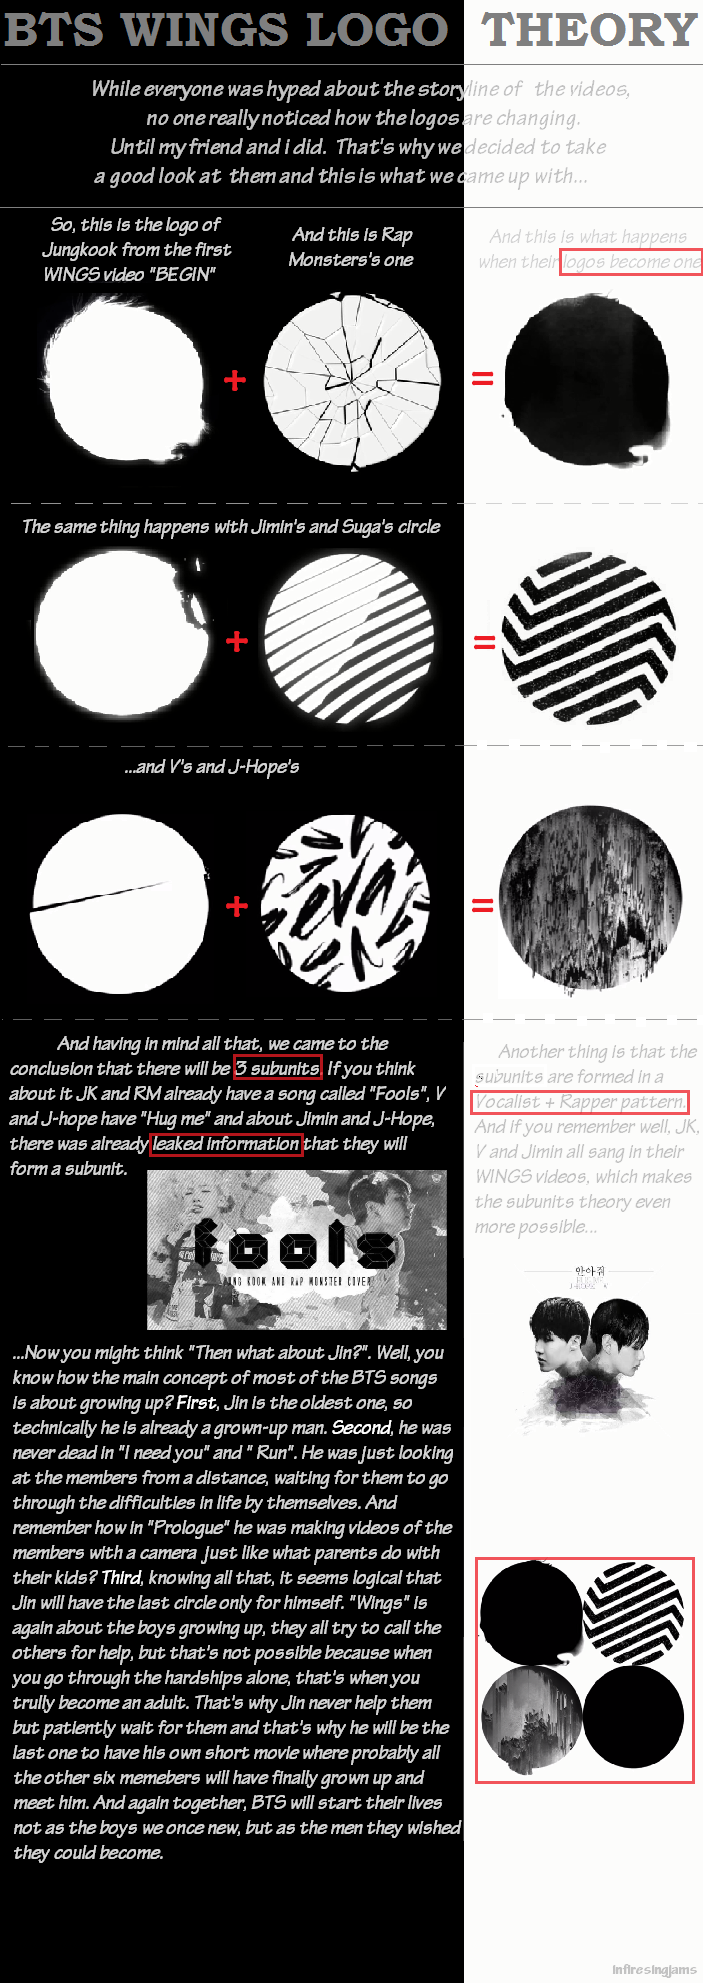 bts logo wings posted by michelle peltier bts logo wings posted by michelle peltier